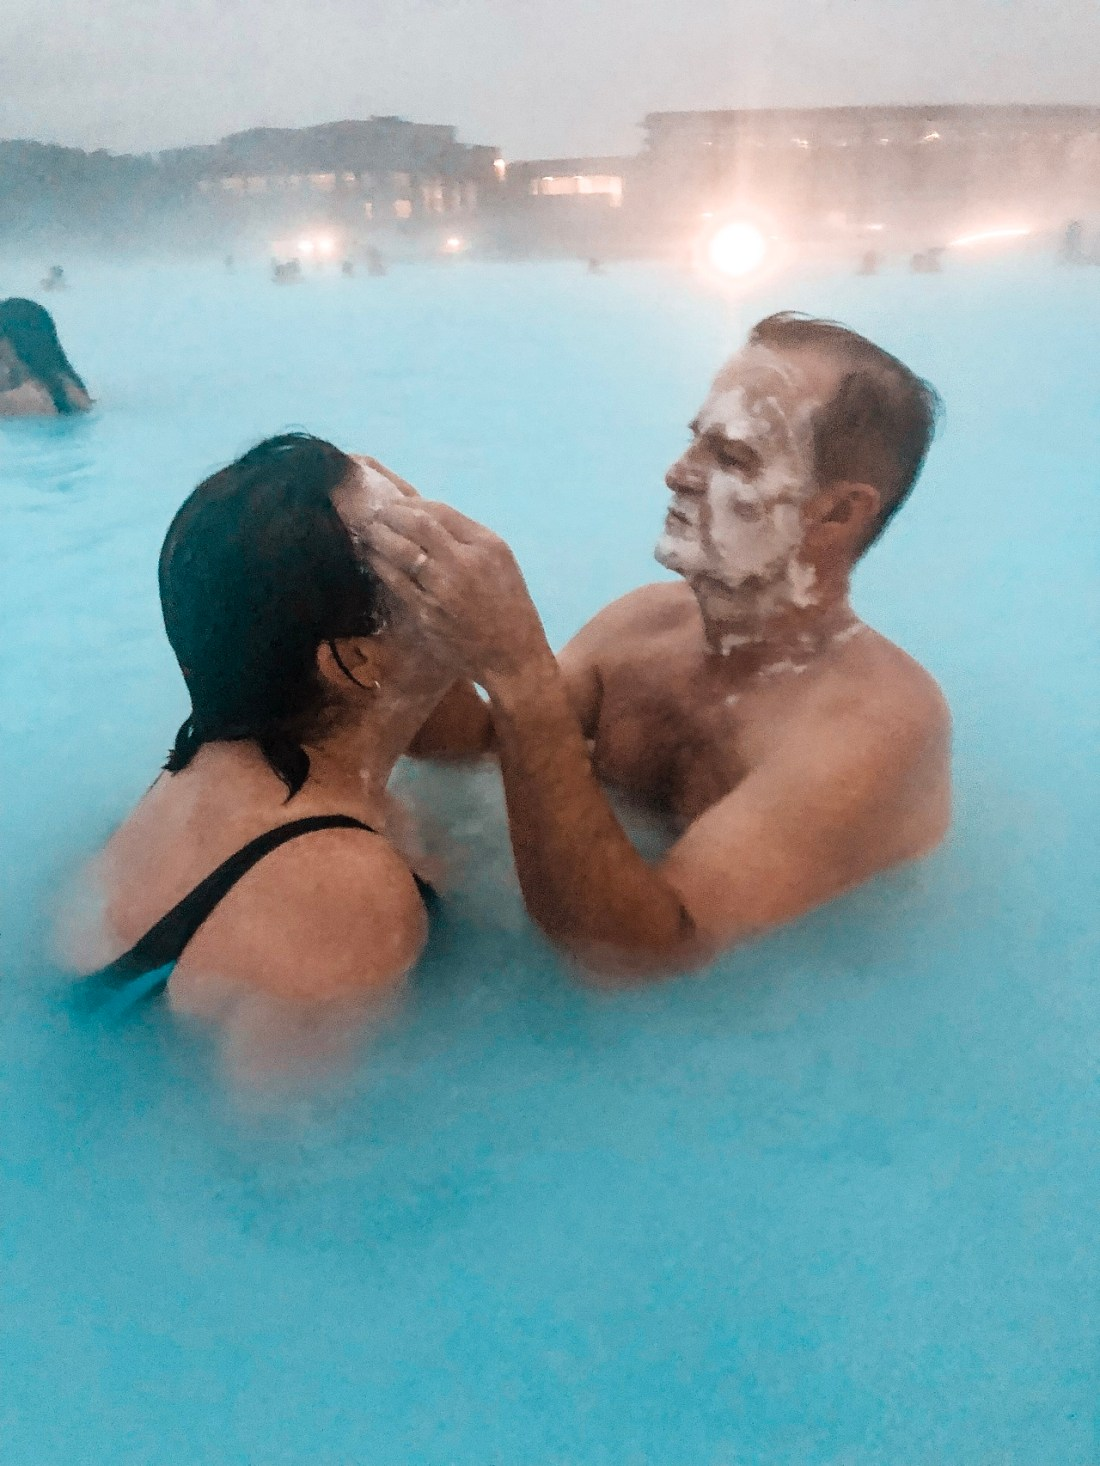 Putting masks on in Blue Lagoon